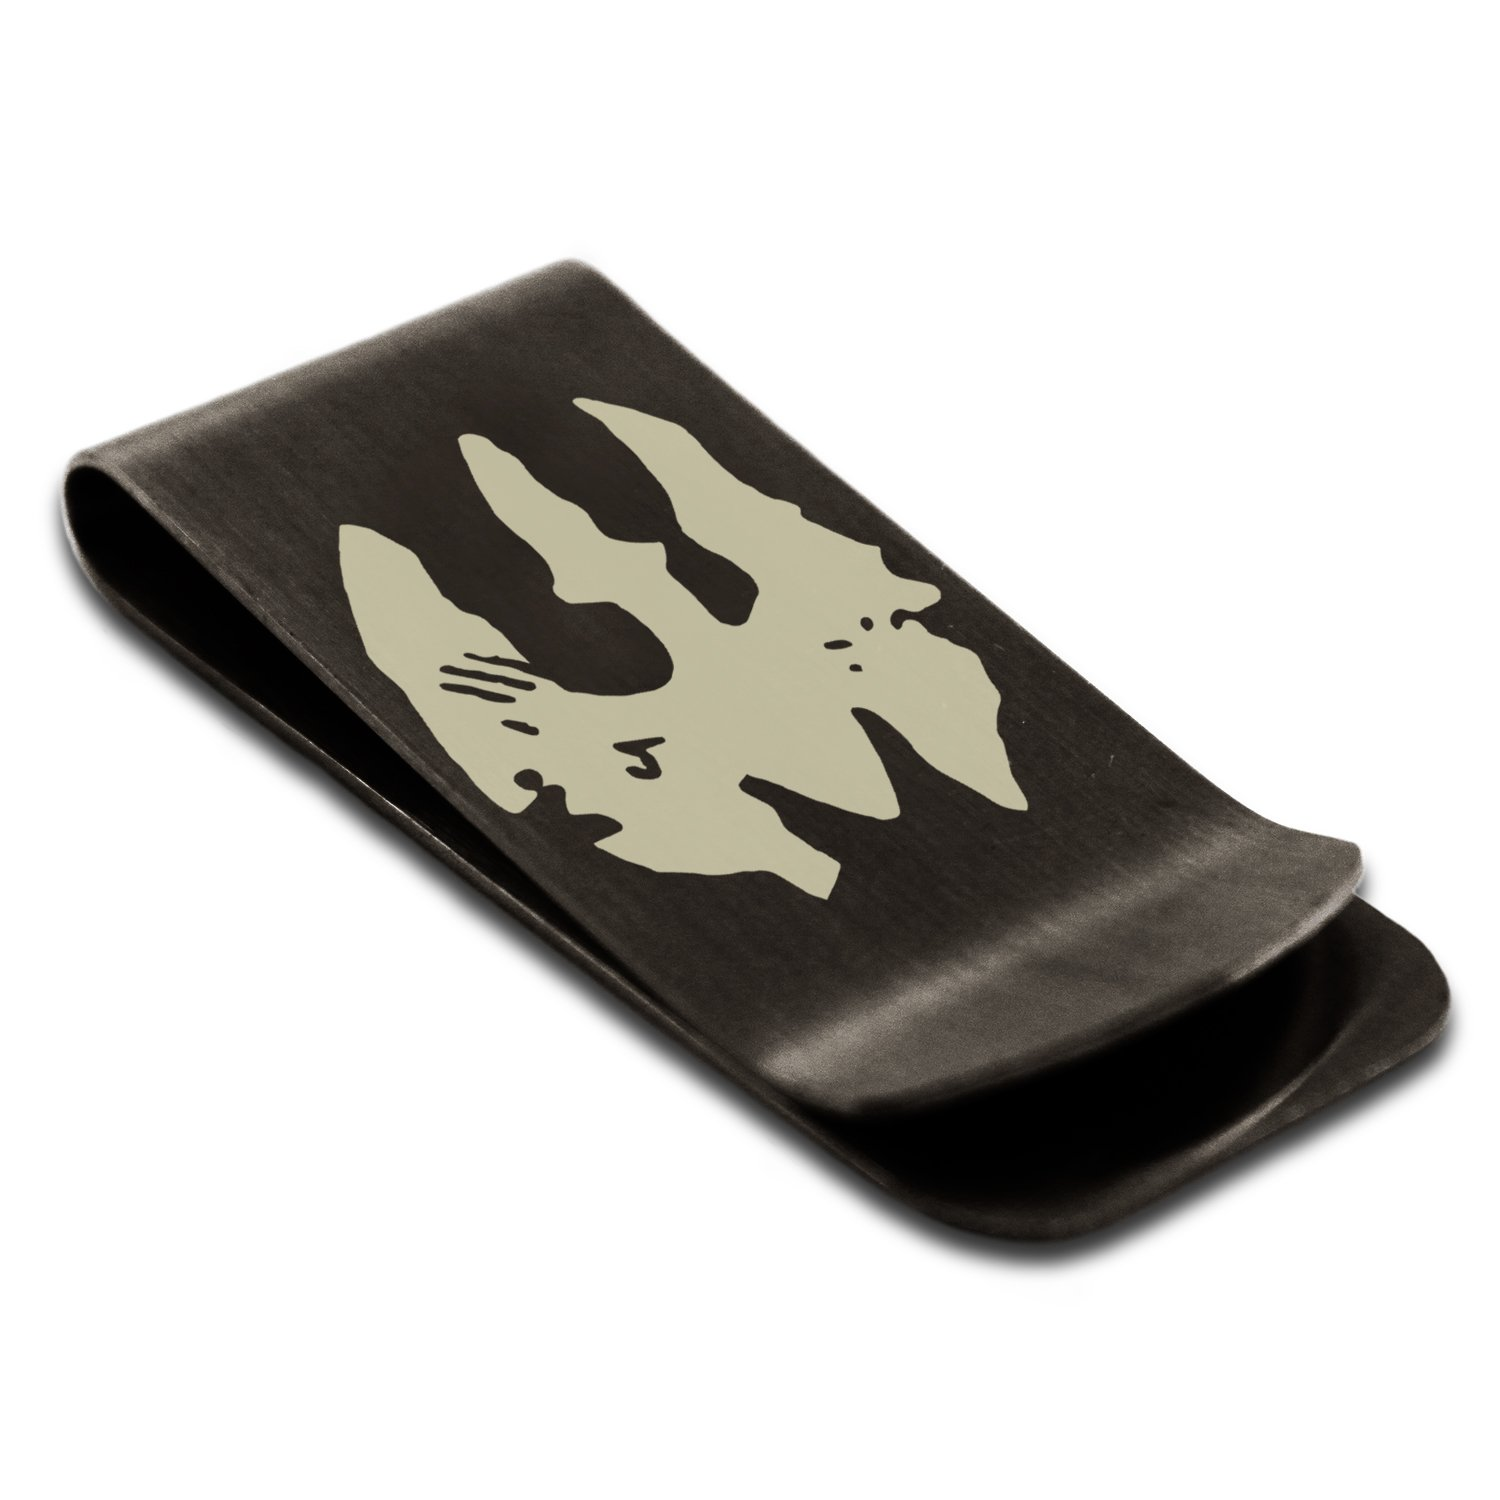 Matte black stainless steel star wars mandalorian death watch matte black stainless steel star wars mandalorian death watch symbol engraved money clip credit card holder at amazon mens clothing store biocorpaavc Image collections